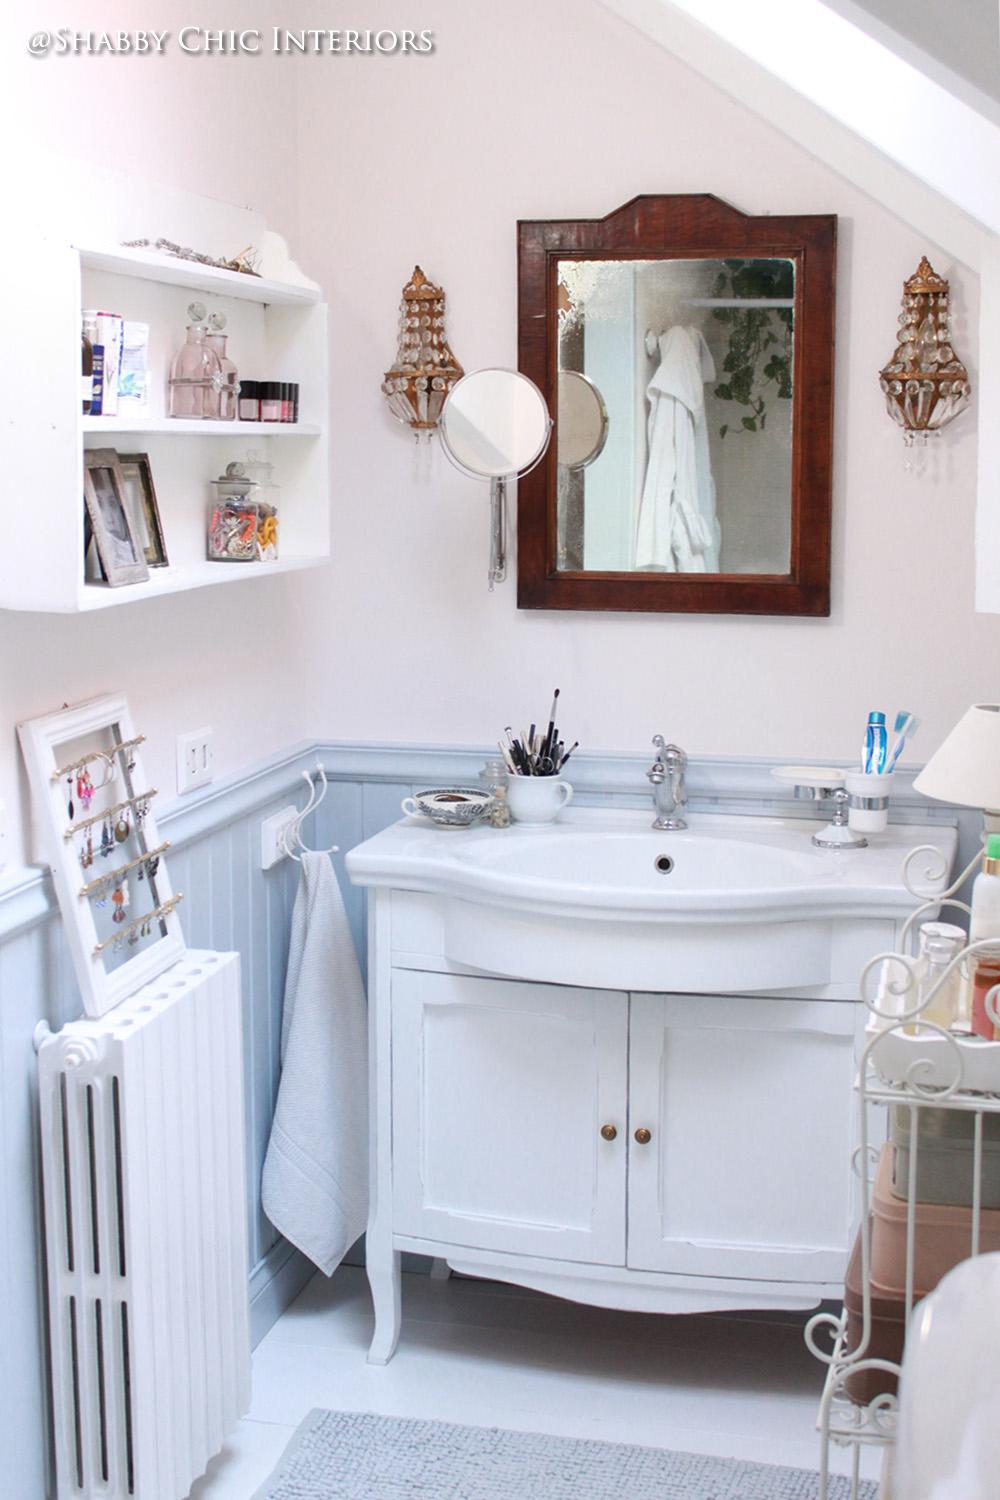 Shabby Chic Interiors: My Home | Bathroom | Pinterest | Shabby chic ...